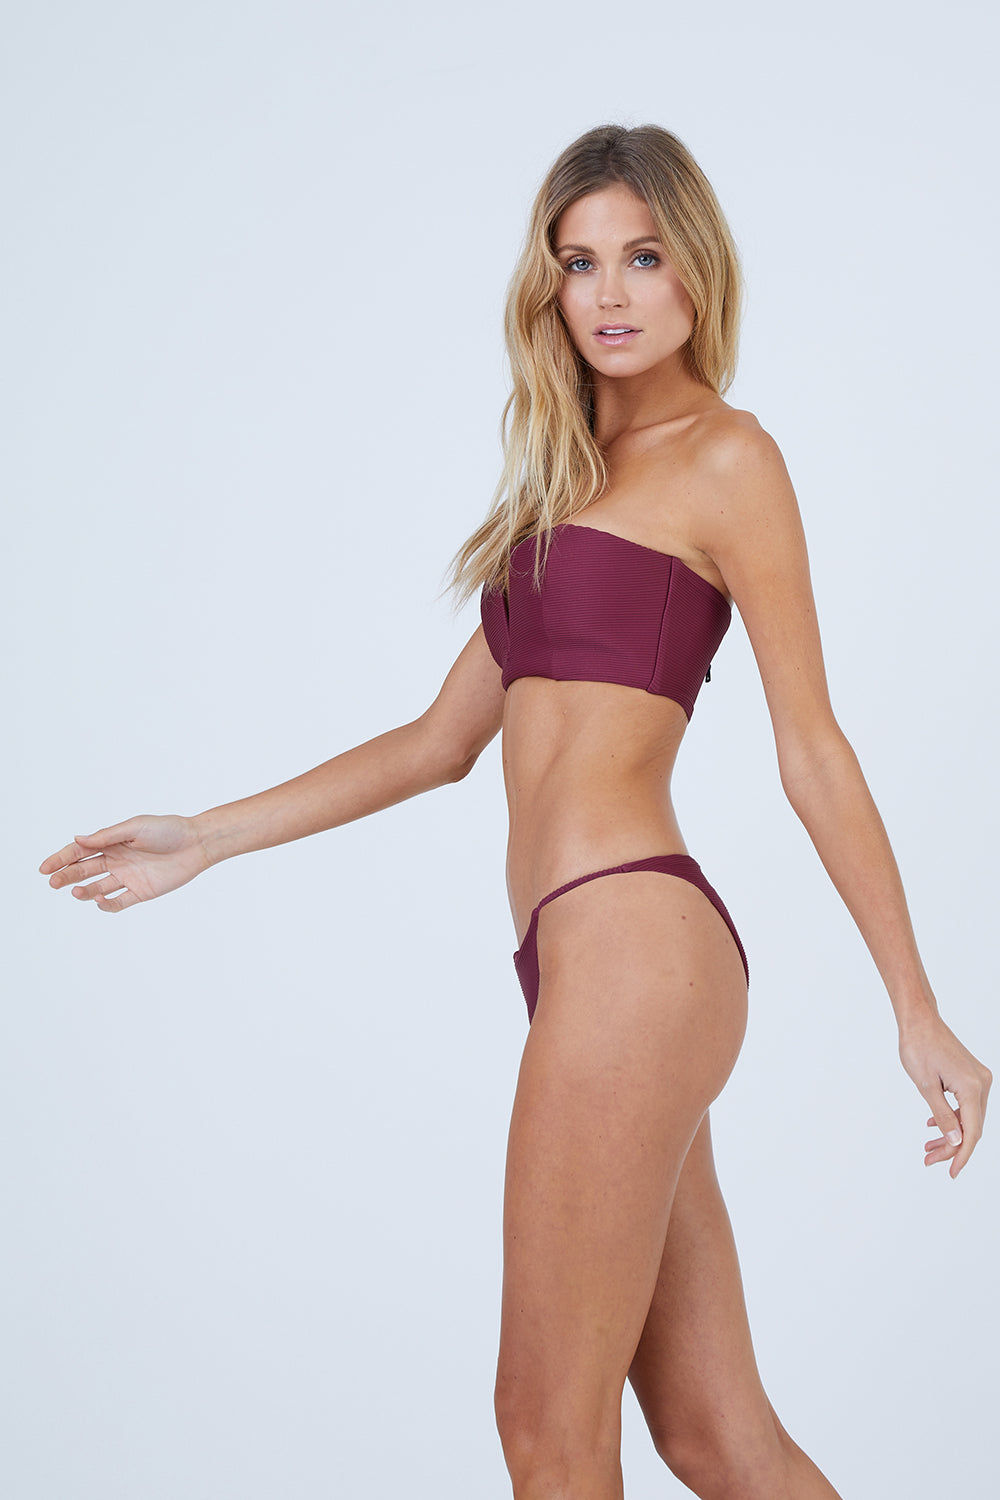 ONIA Julie V-Wire Bandeau Bikini Top - Maroon Red Bikini Top | Maroon Red| Onia Julie V-Wire Bandeau Bikini Top - Maroon Red Features:  Bandeau Style  V-Wire  Molded Foam Cups Princess Seam Back Zipper Closure Ribbed Fabric Front View